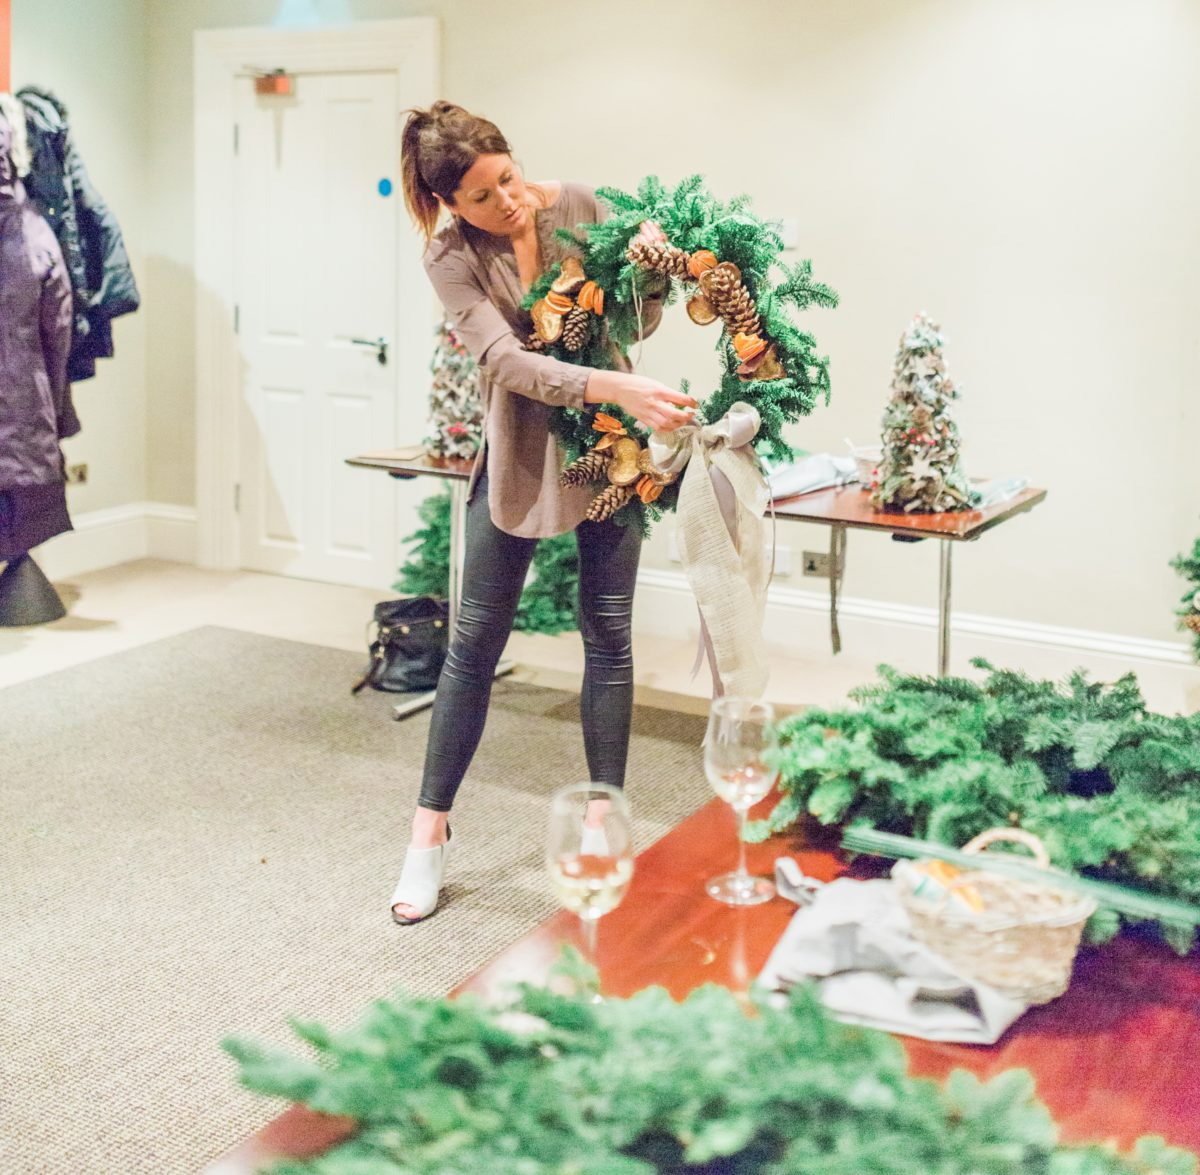 Wreath making course in Jesmond - Newcastle